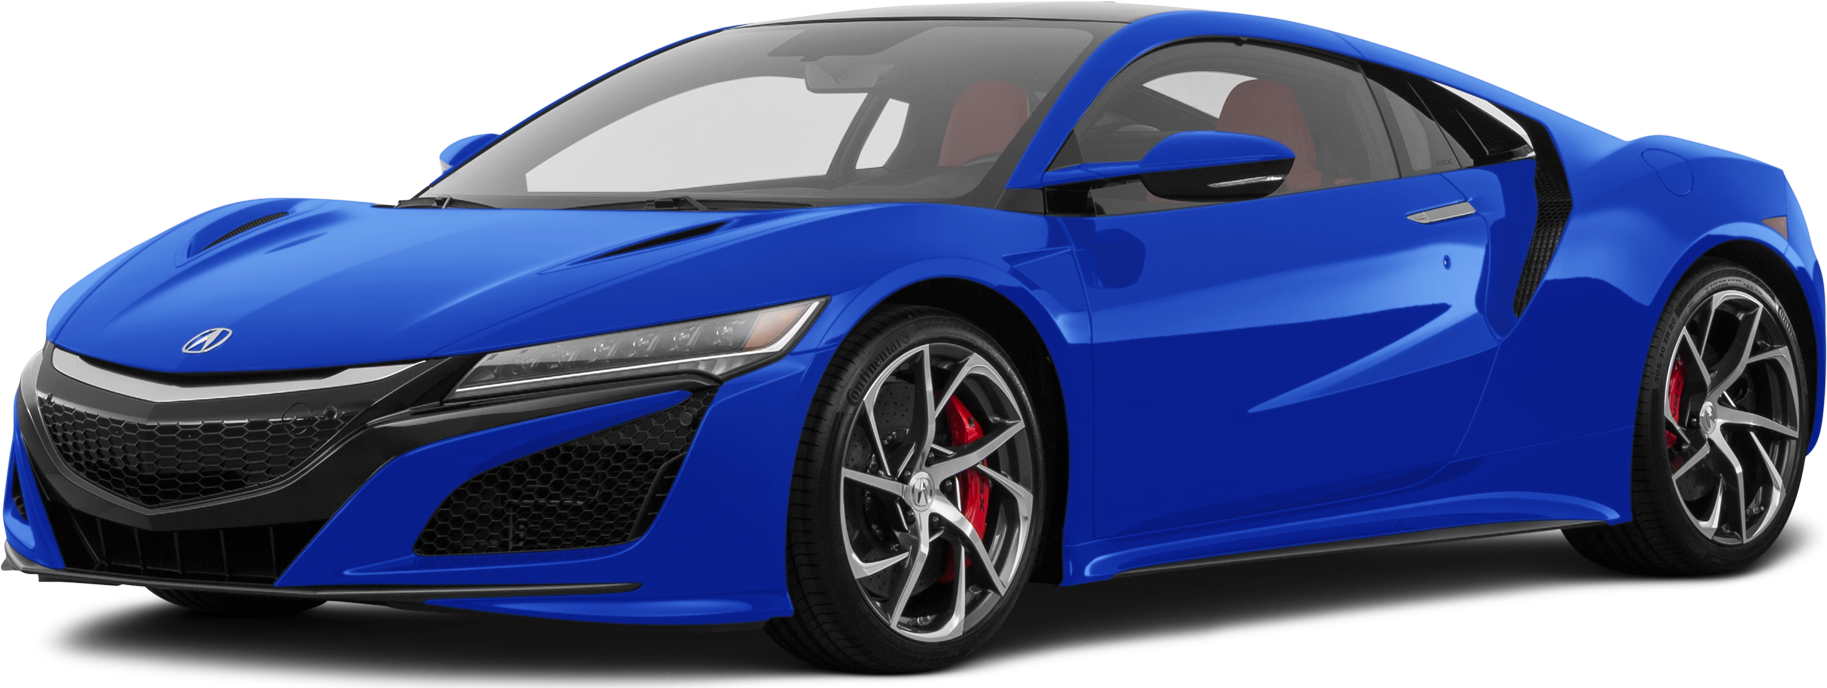 2017 Acura Nsx Values Cars For Sale Kelley Blue Book